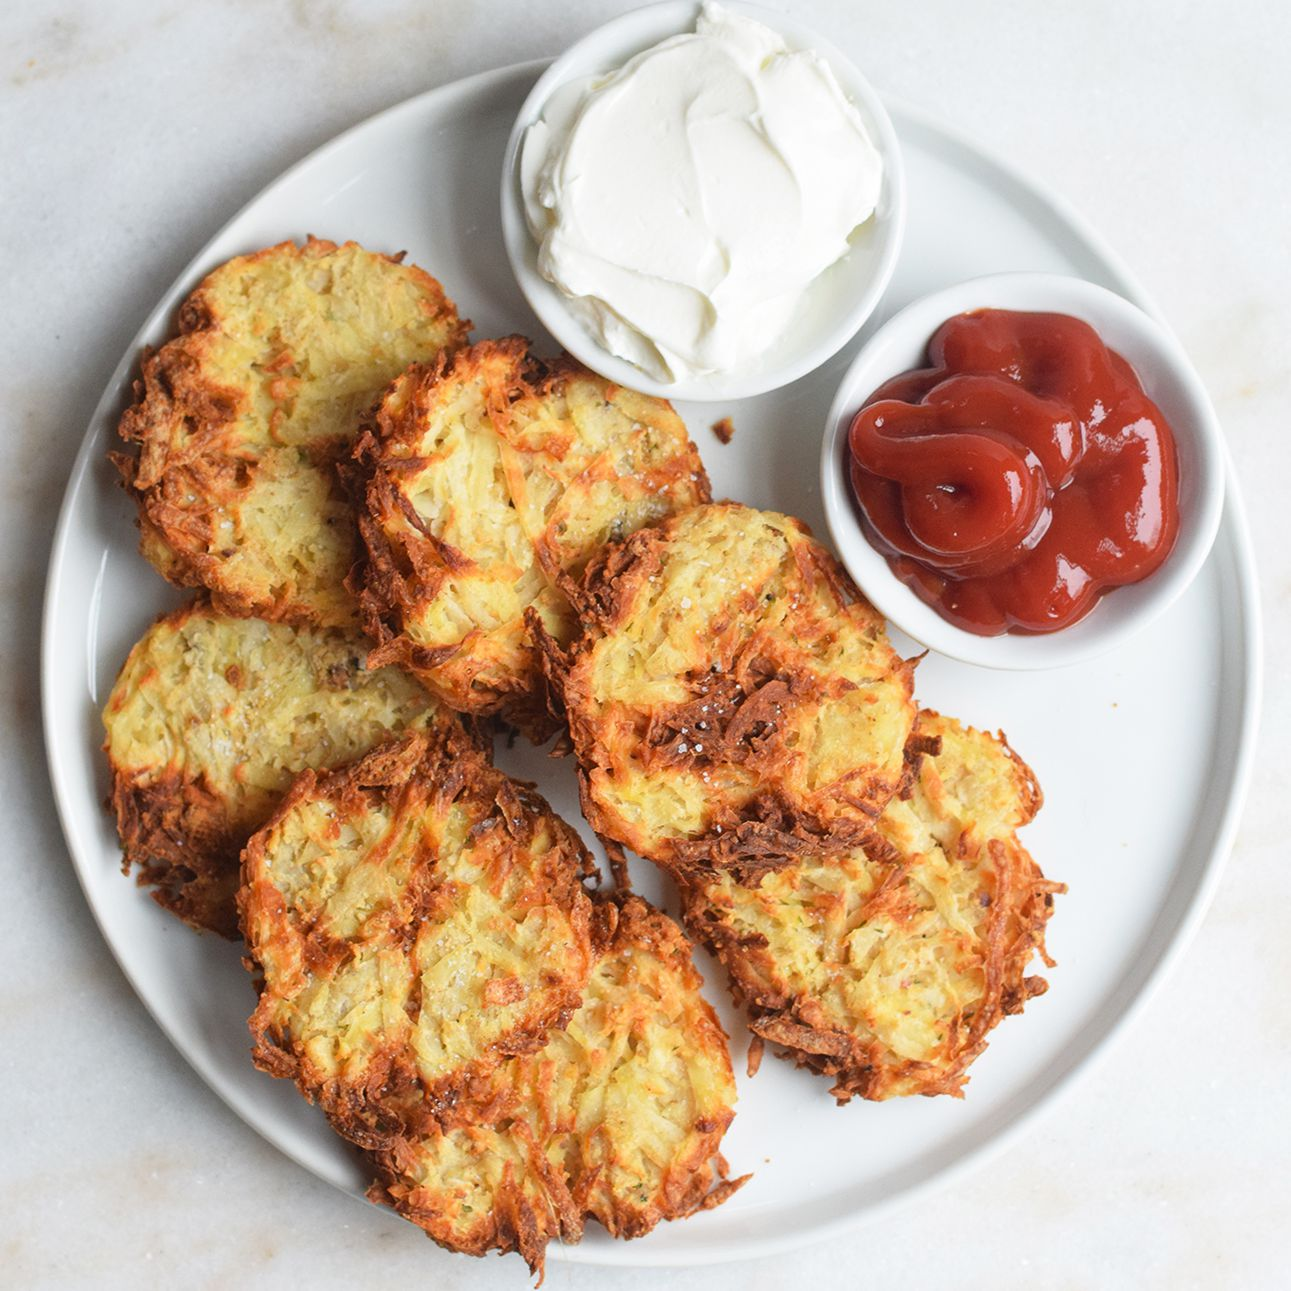 This Is How You Make Crispy, Golden Hash Browns in an Air Fryer